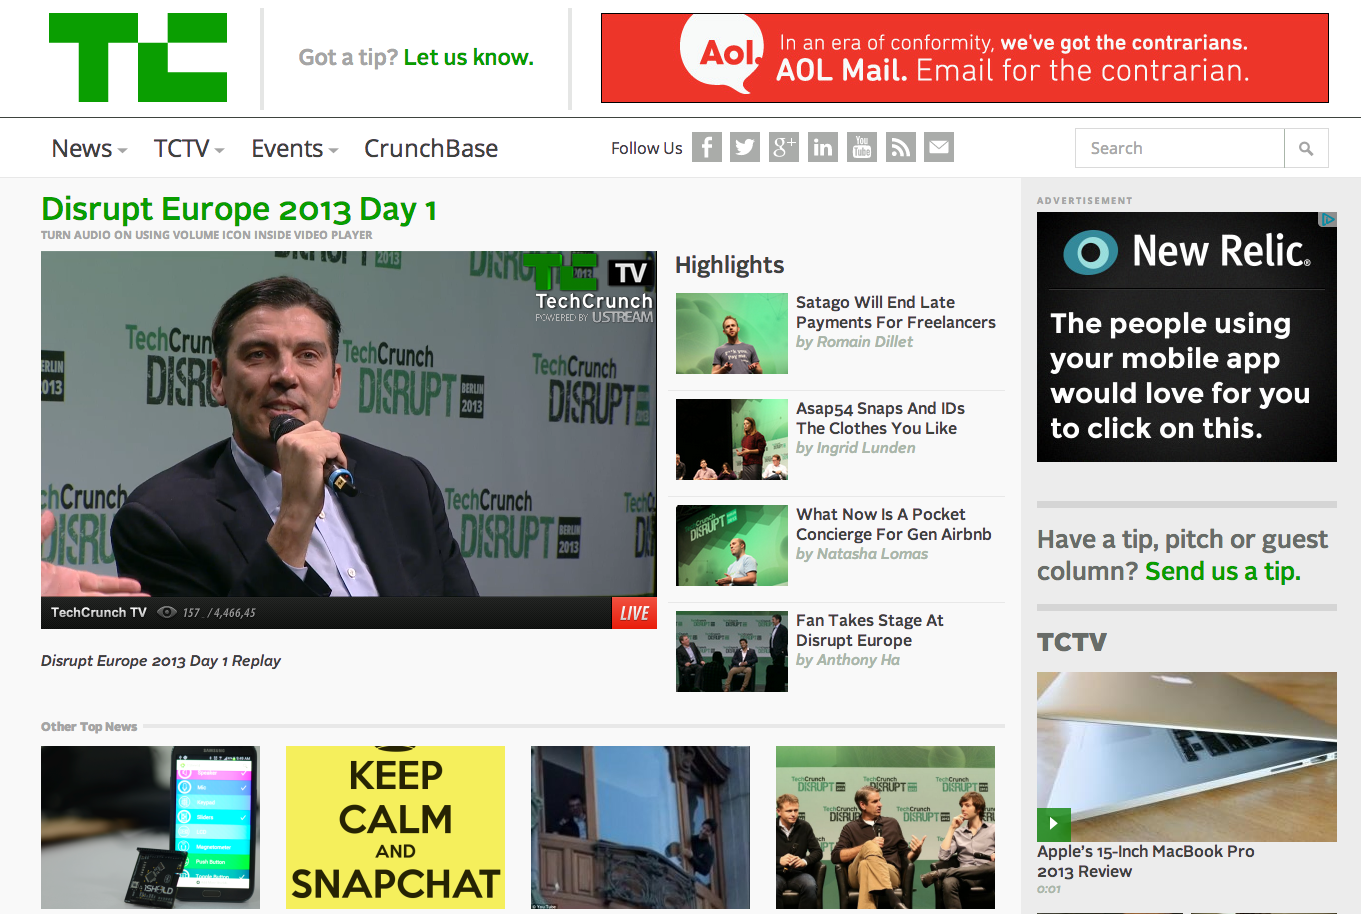 TechCrunch - The latest technology news and information on startups